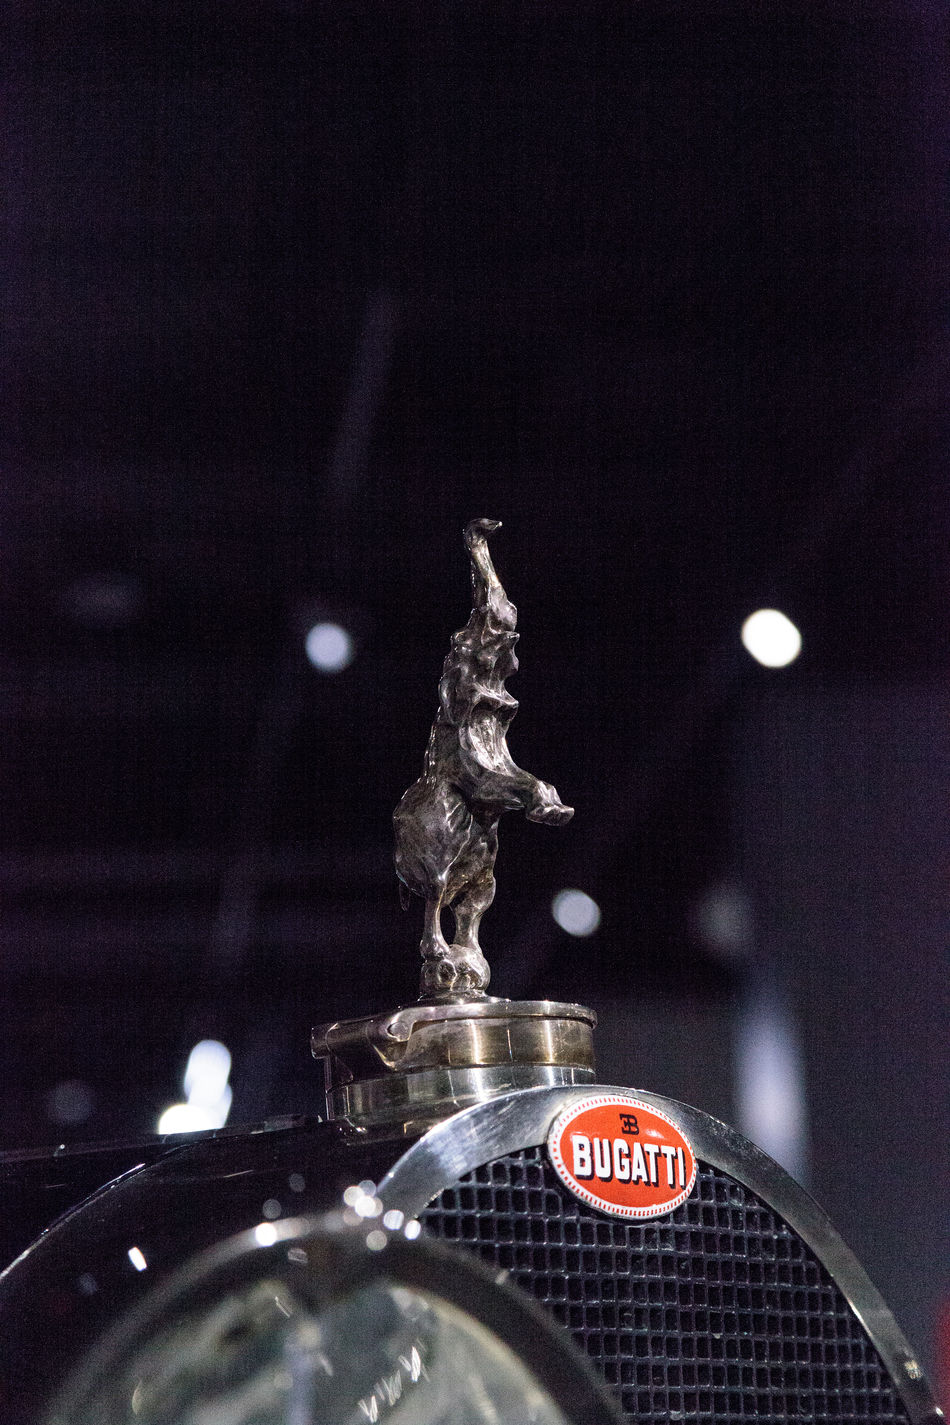 Los Angeles, CA, USA - March 4, 2017: Rearing elephant hood ornament on a 1932 Bugatti Type 41 Royale by Binder at the Petersen Automotive Museum in Los Angeles, California, United States. Editorial only. 1932 Antique Bugatti Classic Car Elephant Hood Ornament Luxury Luxurylifestyle  Old Car Petersen Automotive Museum Royale Transportation Type 41 Vintage